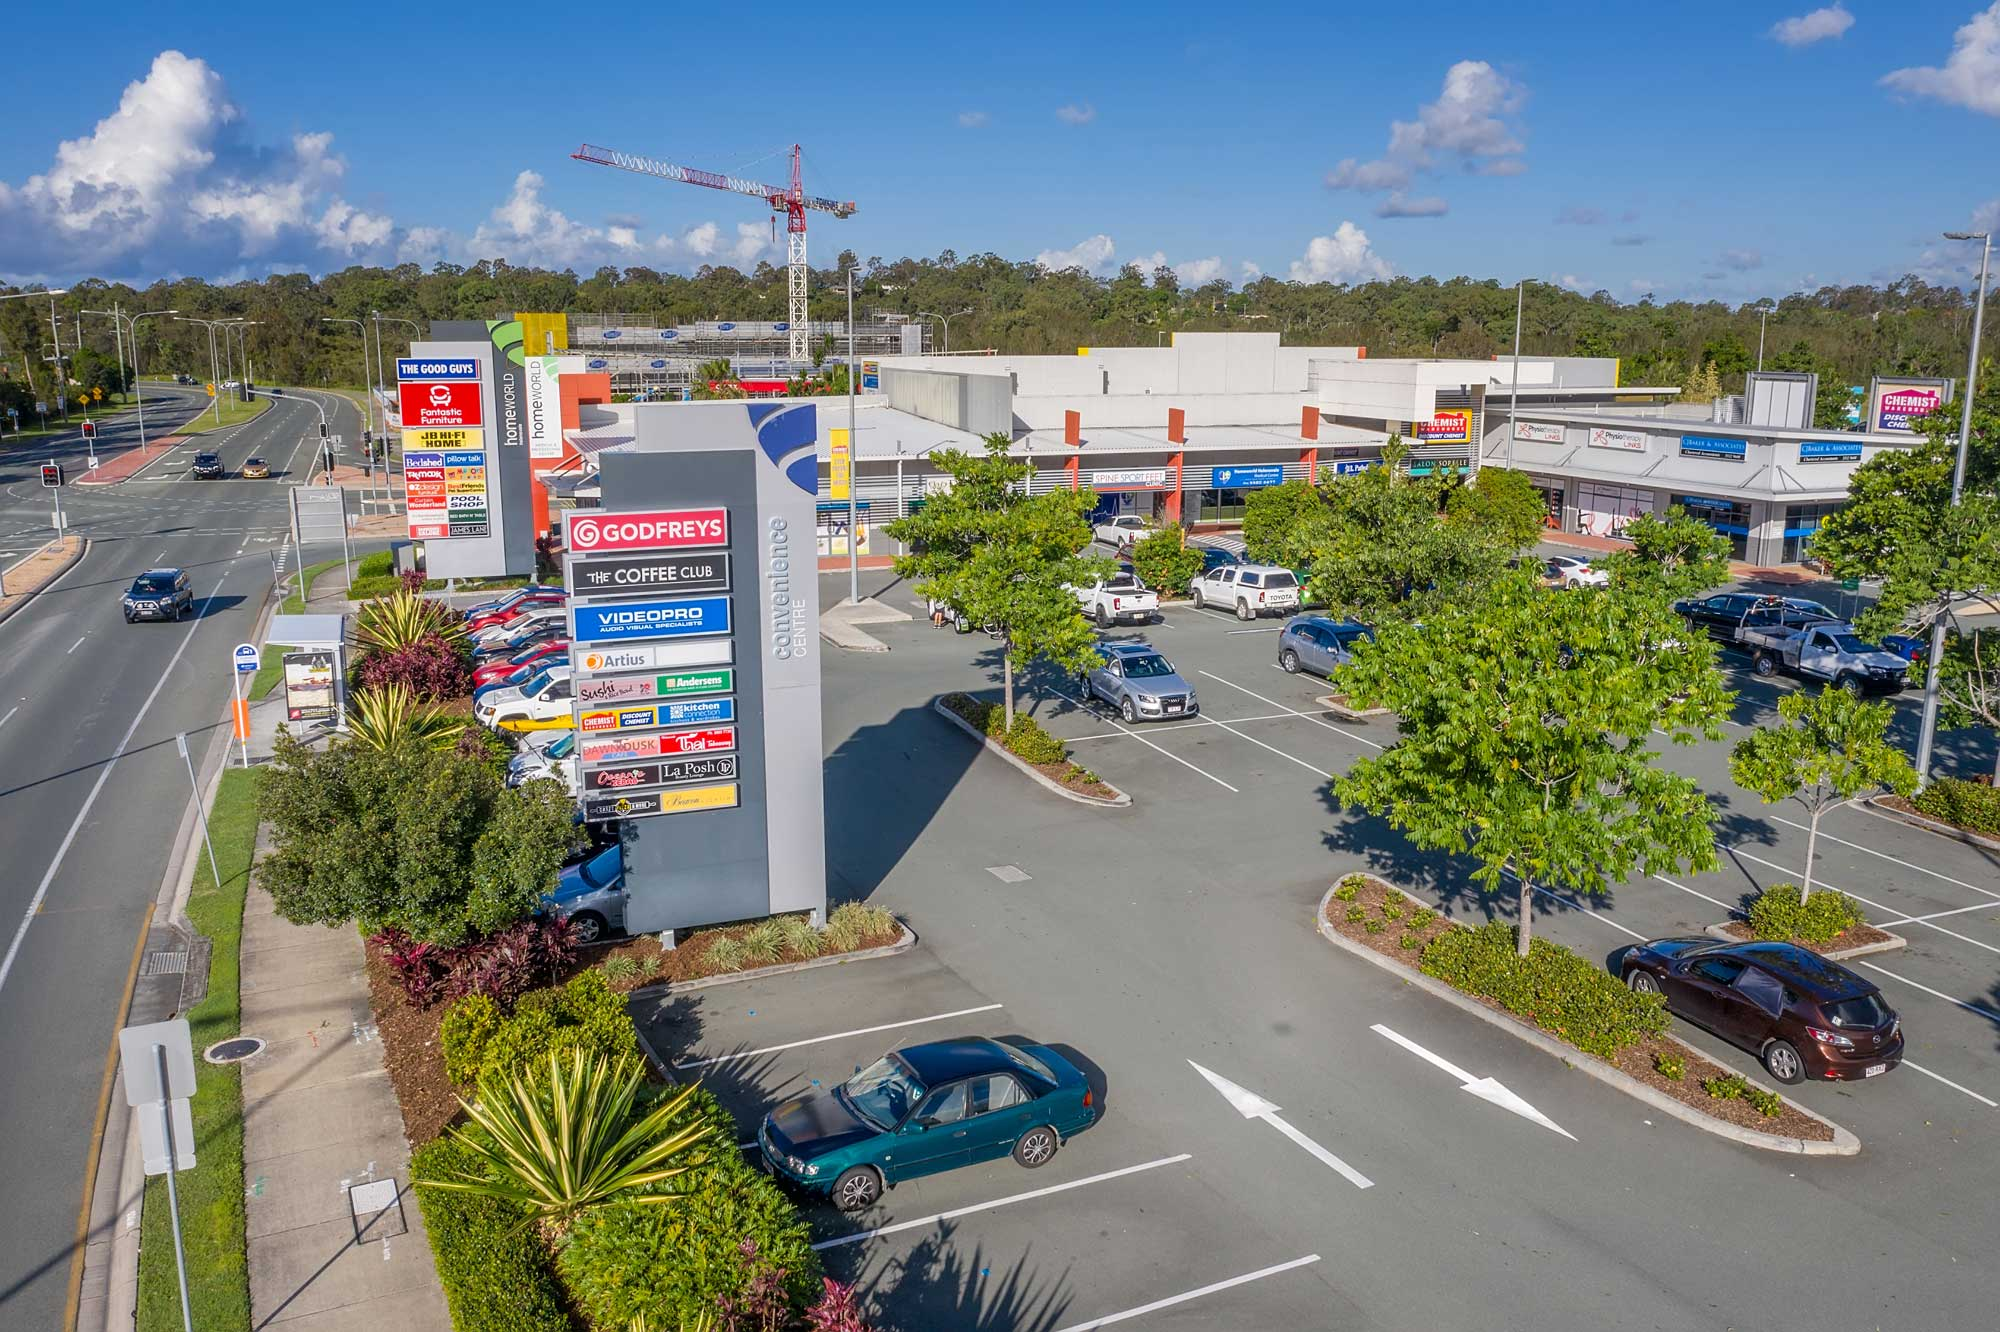 Drone video of the Homeworld Helensvale shopping centre